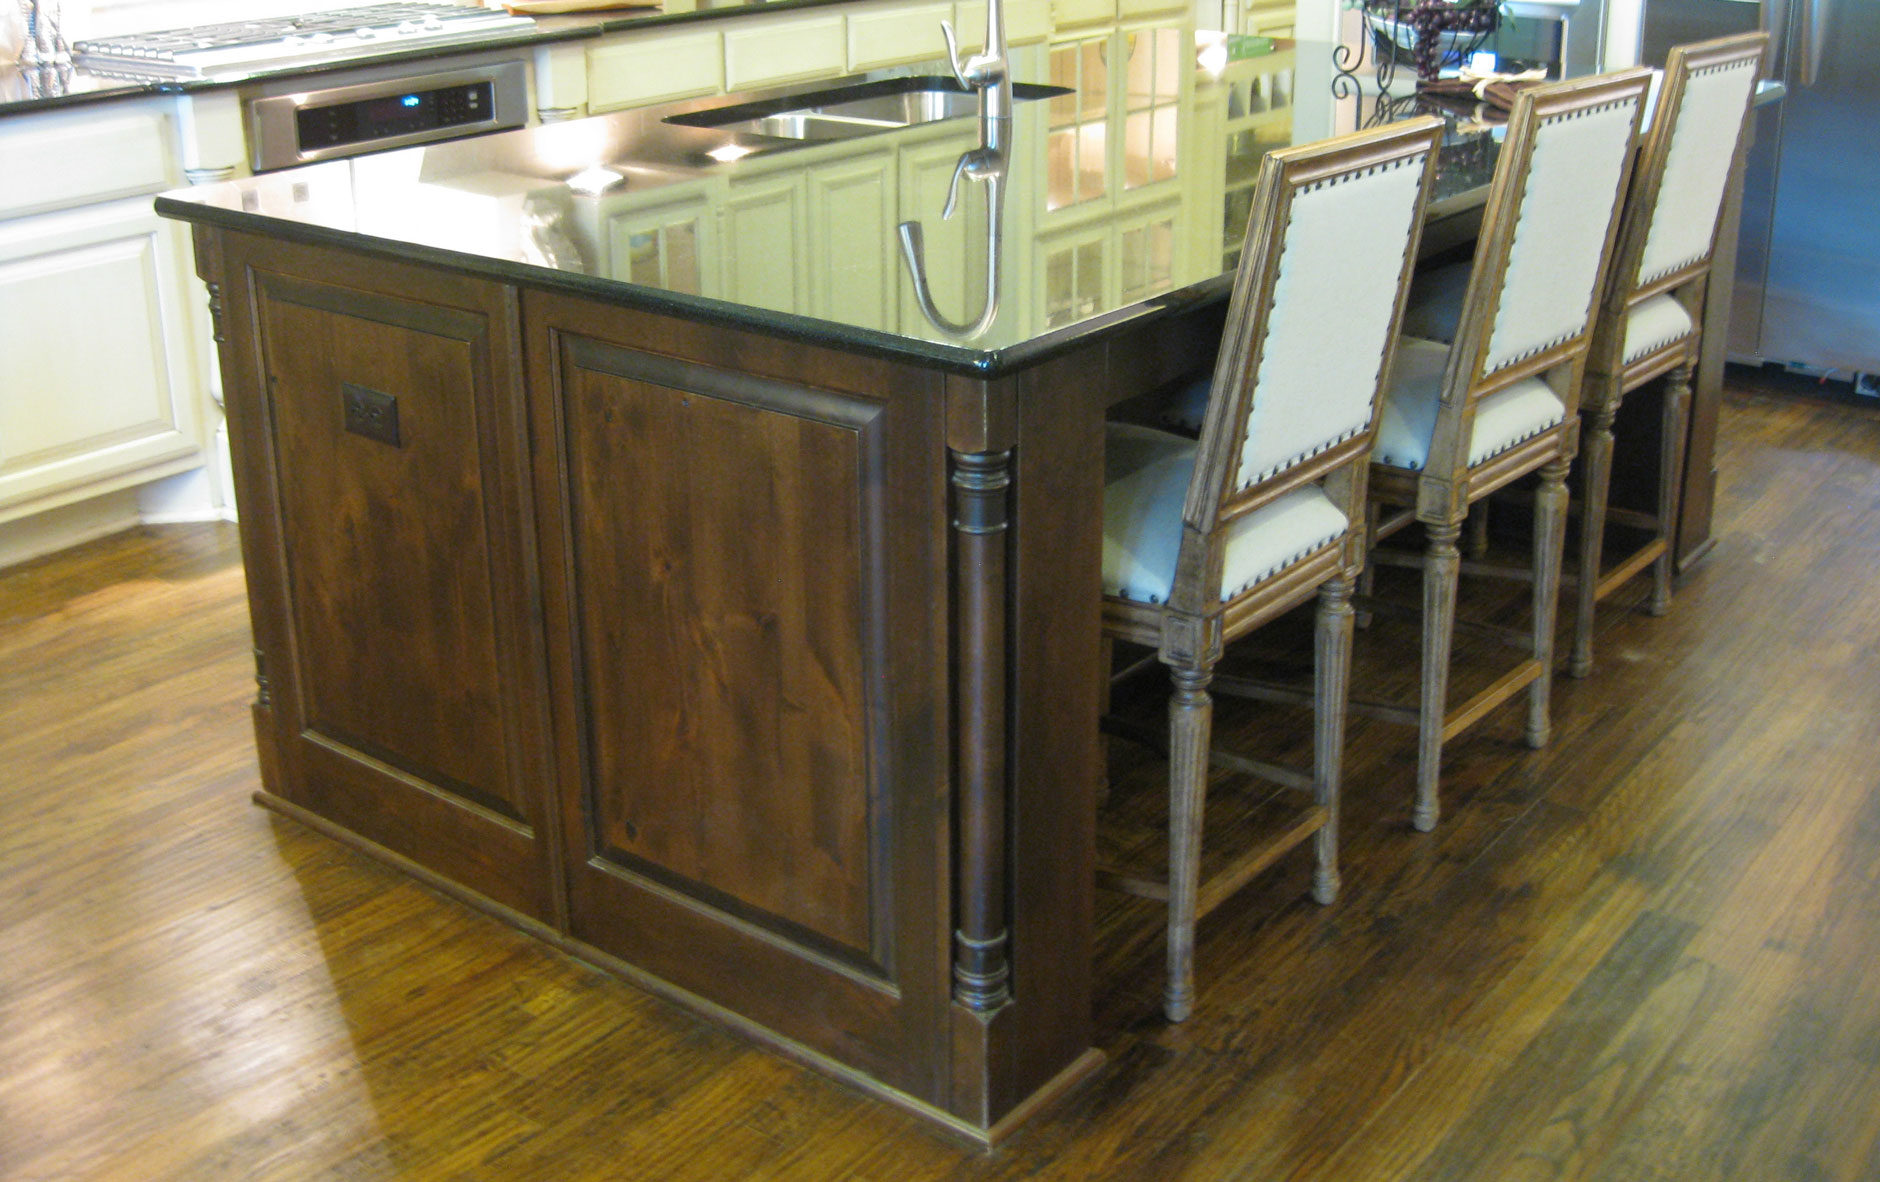 kitchen island in knotty alder with Tuscan corner posts by Burrows Cabinets and recessed seating